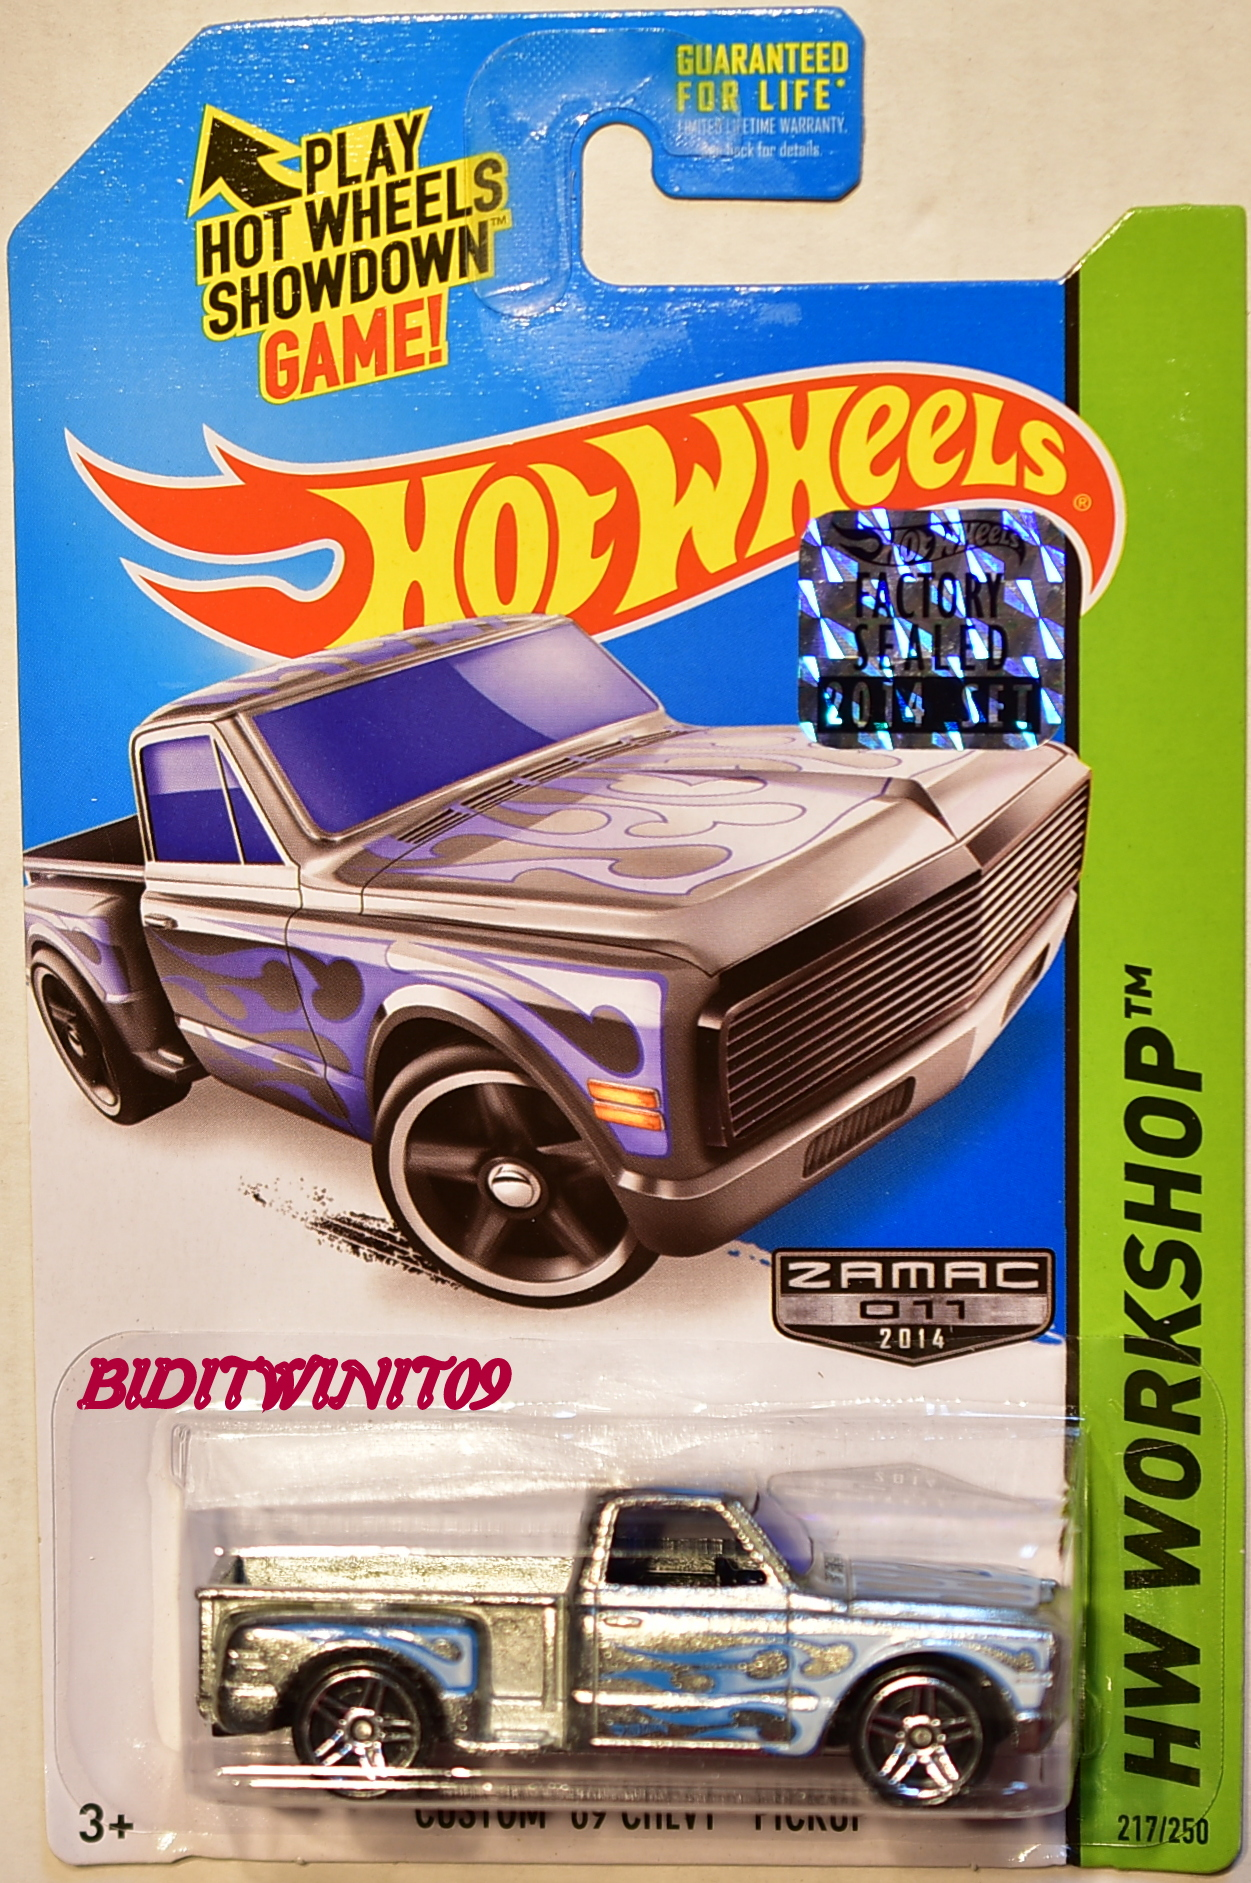 HOT WHEELS 2014 HW WORKSHOP CUSTOM 69 CHEVY PICKUP ZAMAC FACTORY SEALED